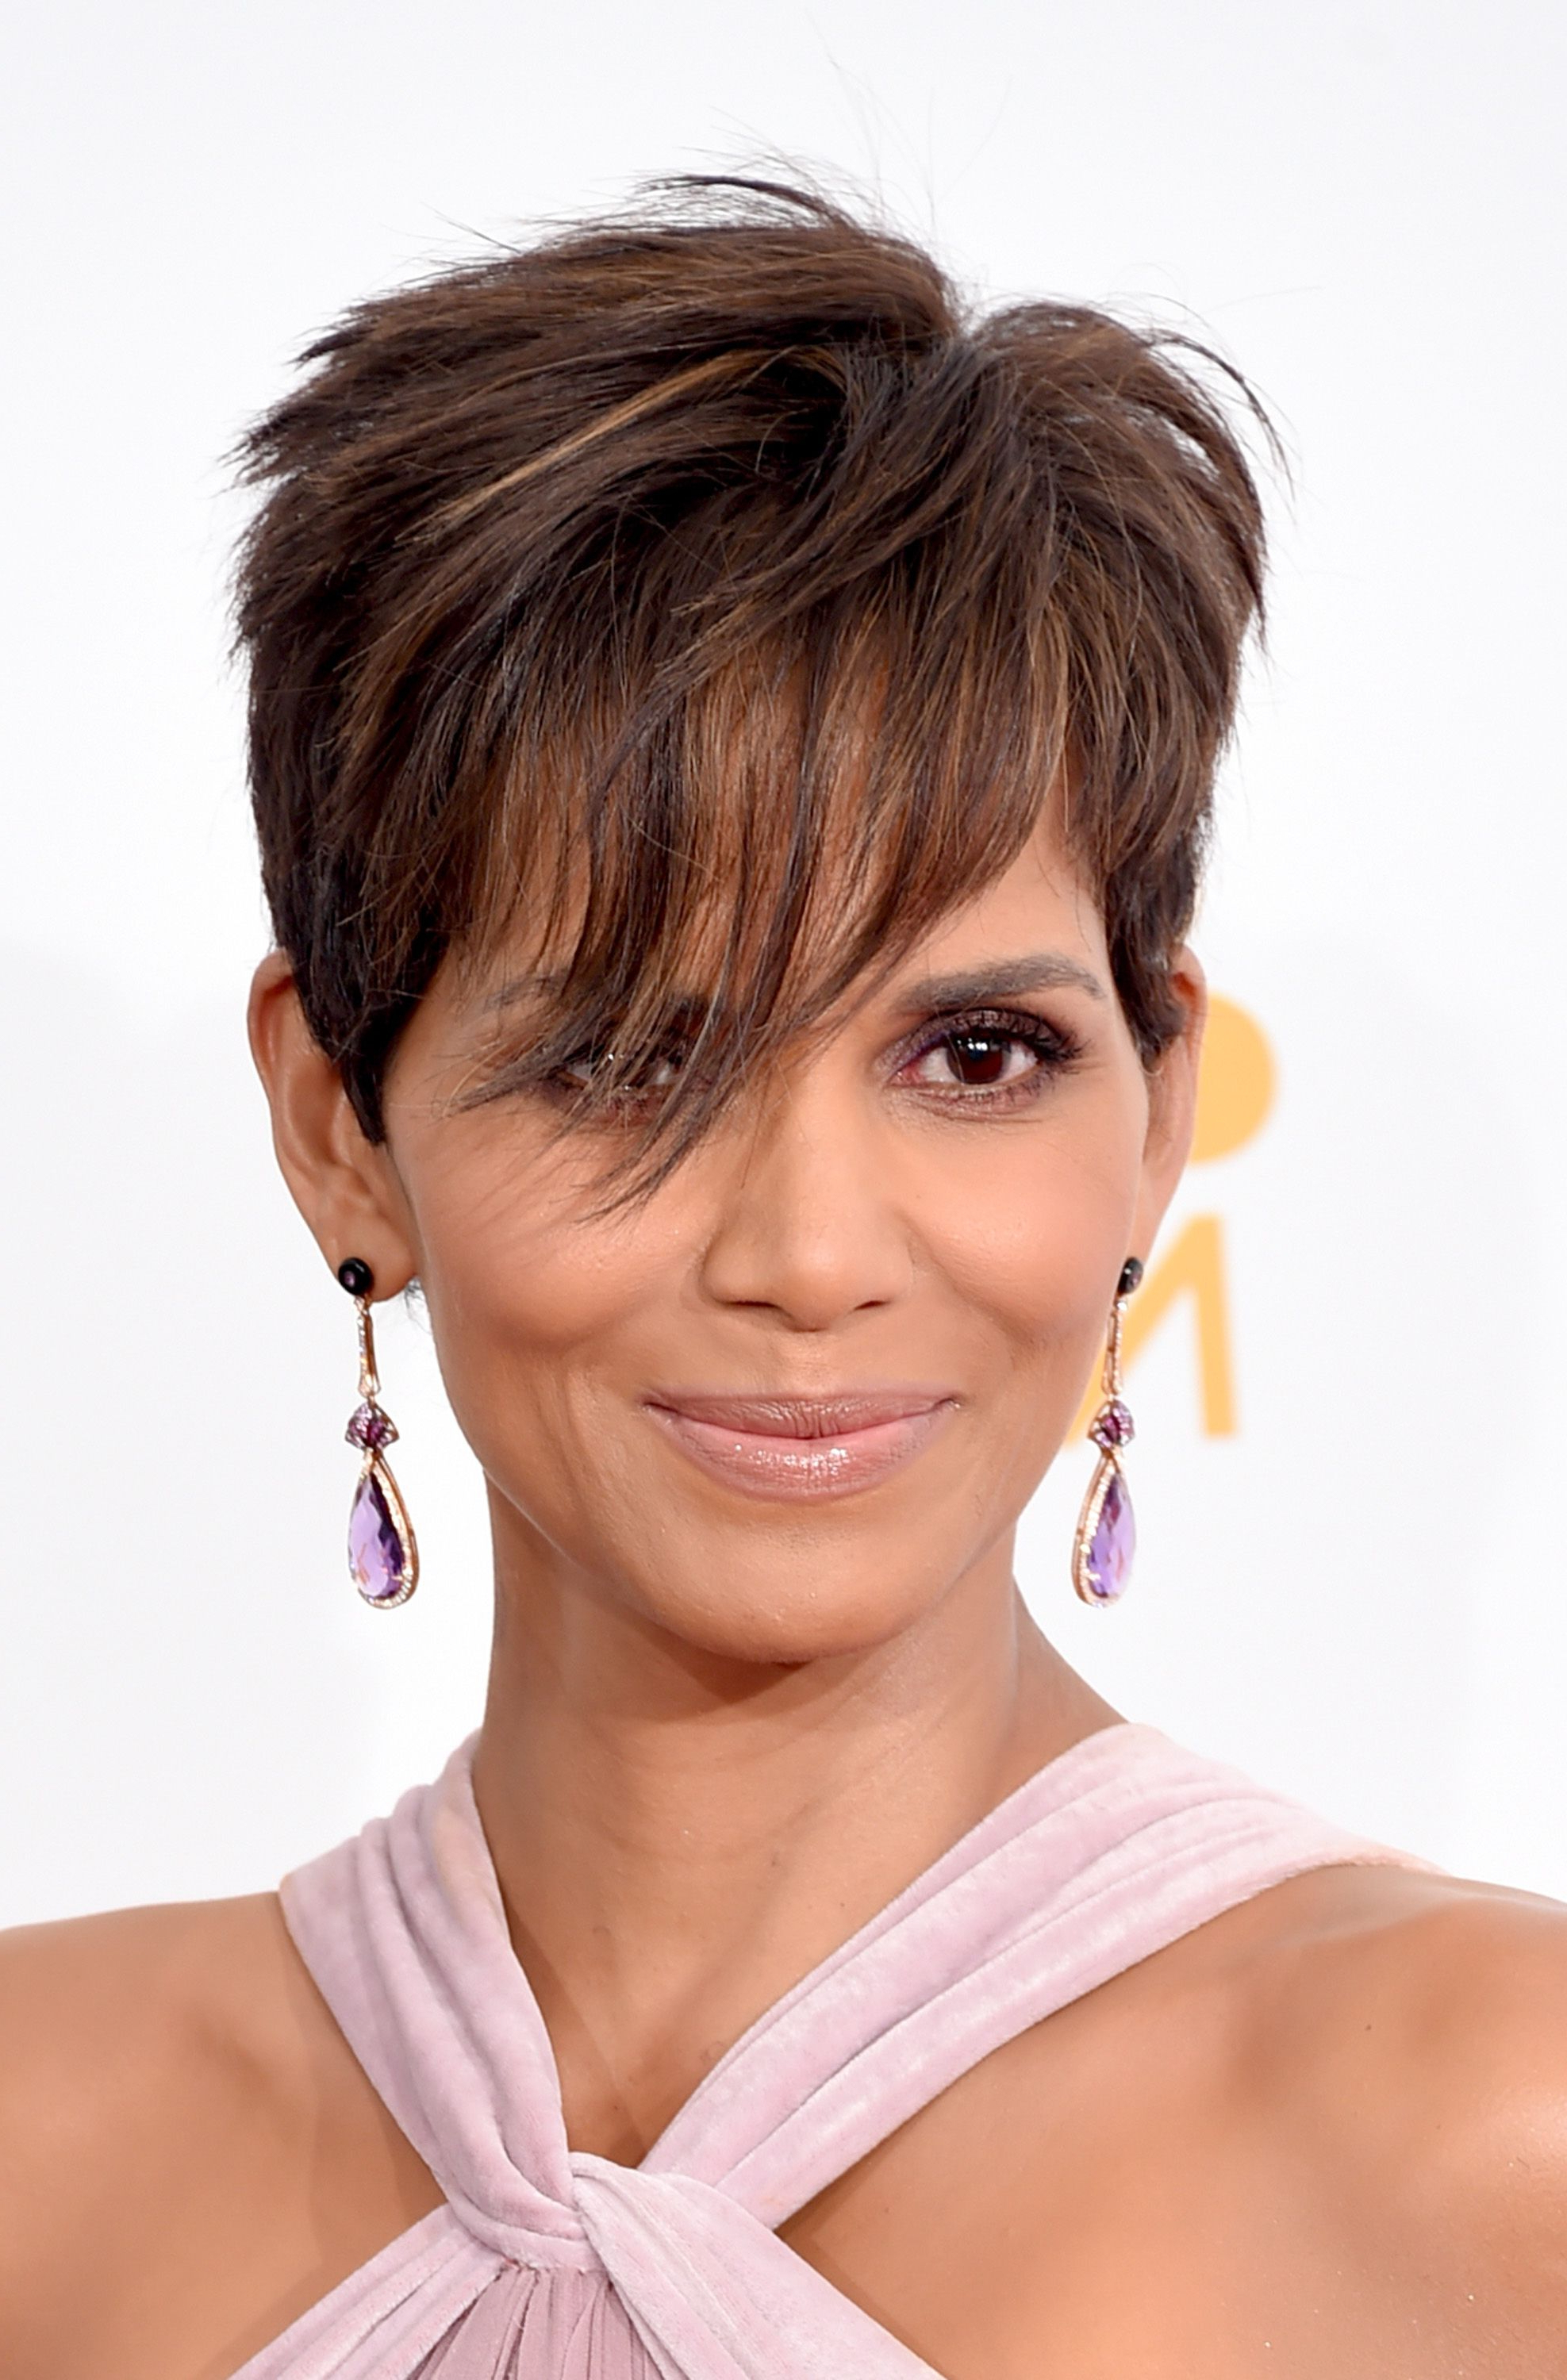 Most Popular Textured Pixie Asian Hairstyles With 40 Best Short Pixie Cut Hairstyles 2019 – Cute Pixie (View 9 of 20)